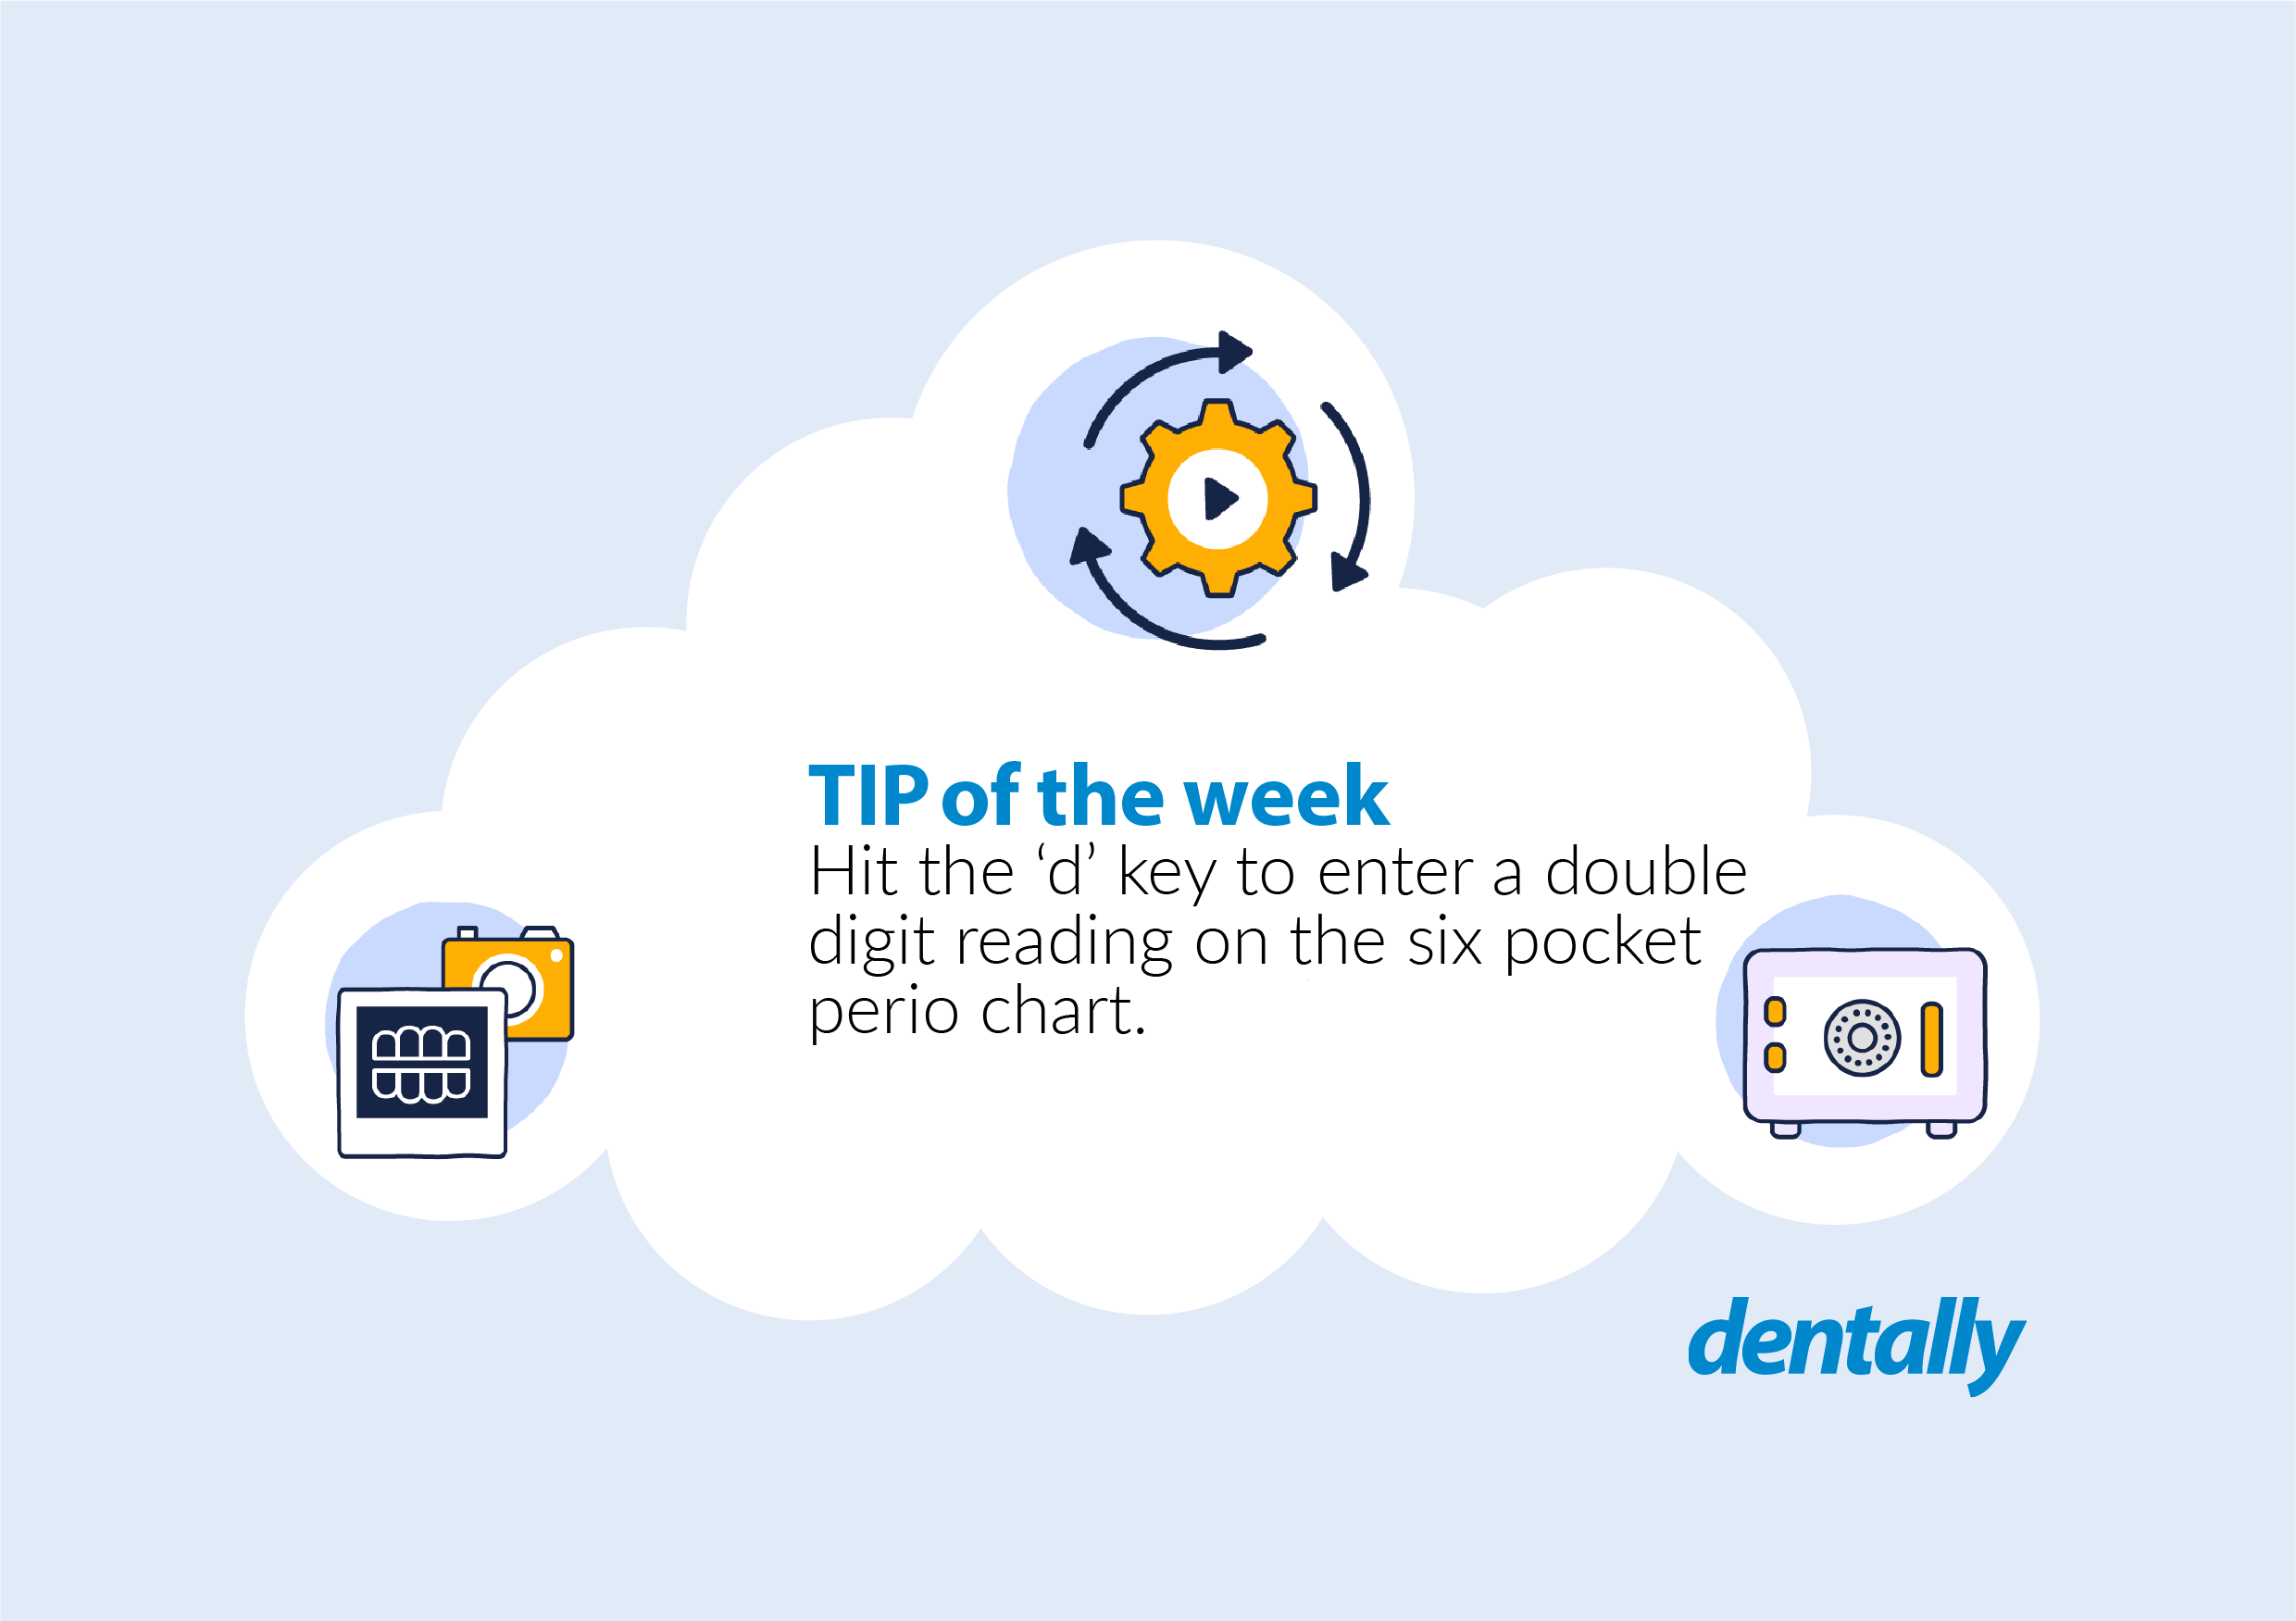 TOW TIME SAVING - double digit on 6 perio chart